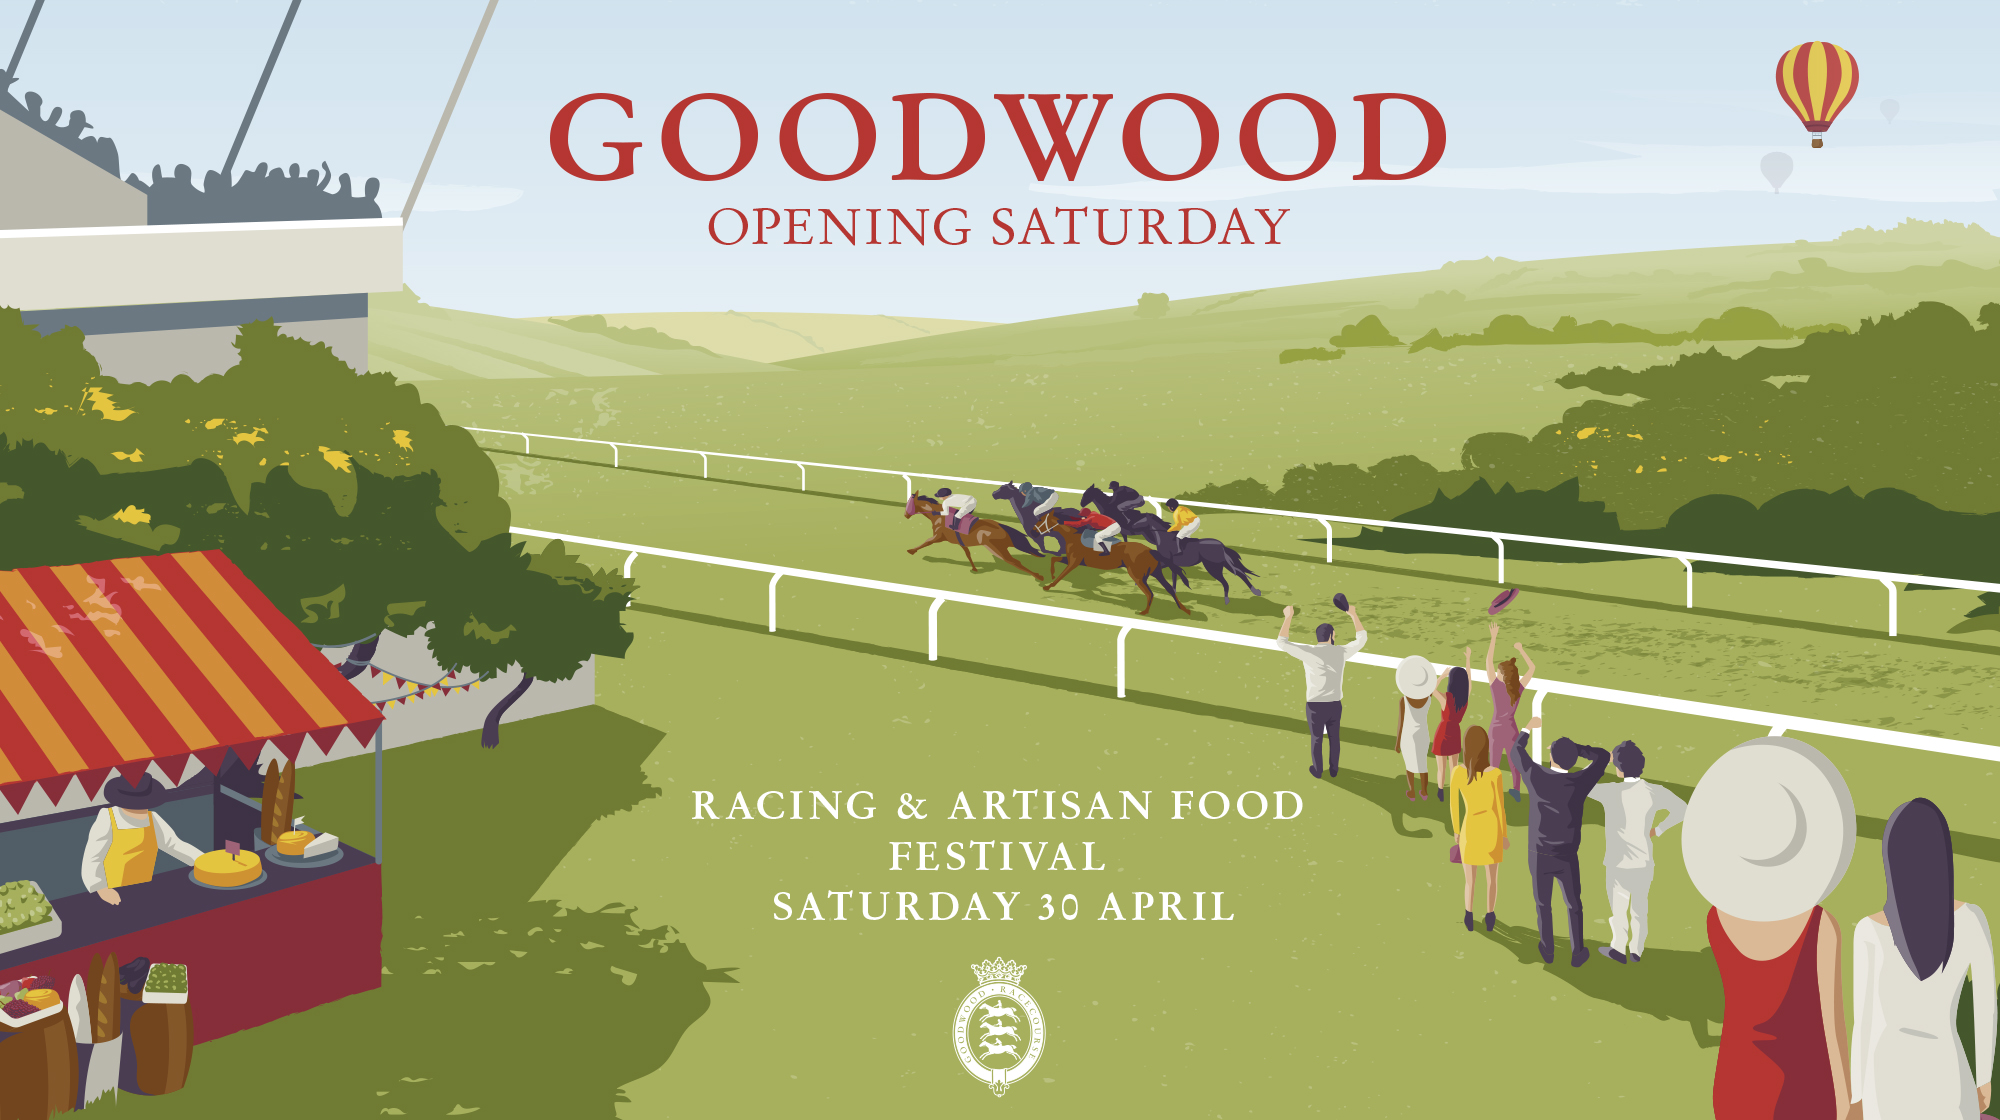 Goodwood opening Saturday advertisement using illustration. Earnie creative design